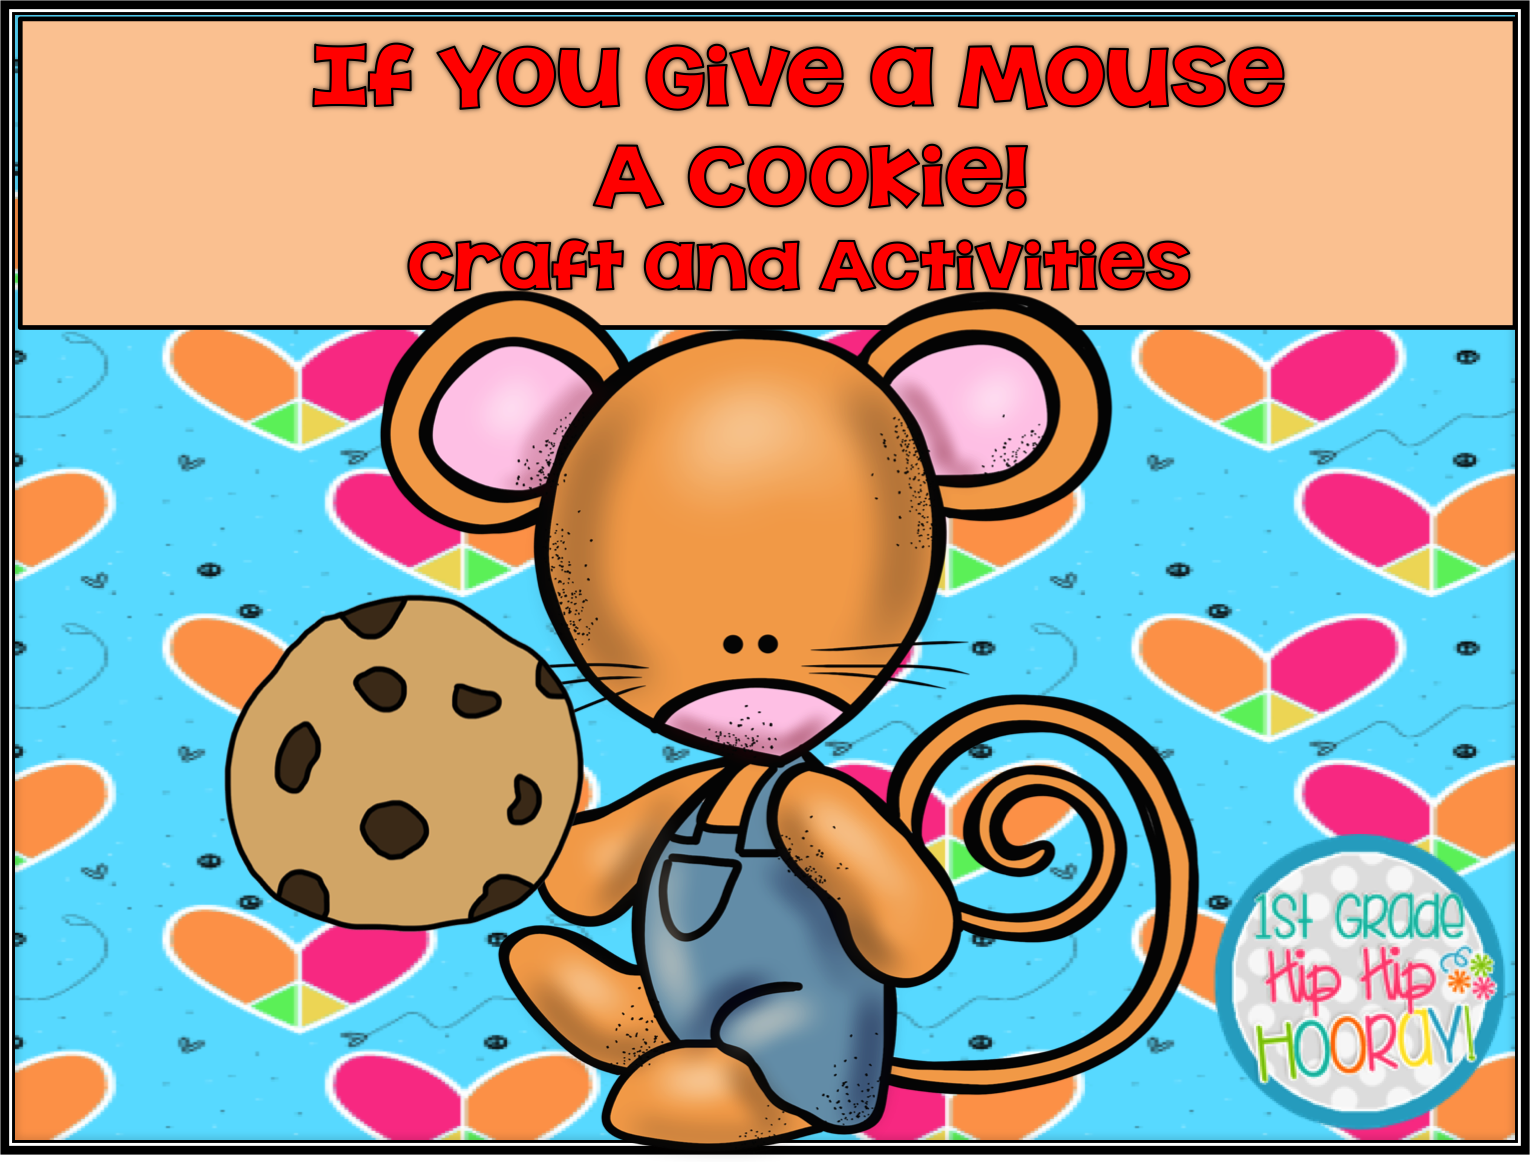 1st Grade Hip Hip Hooray If You Give A Mouse A Cookie